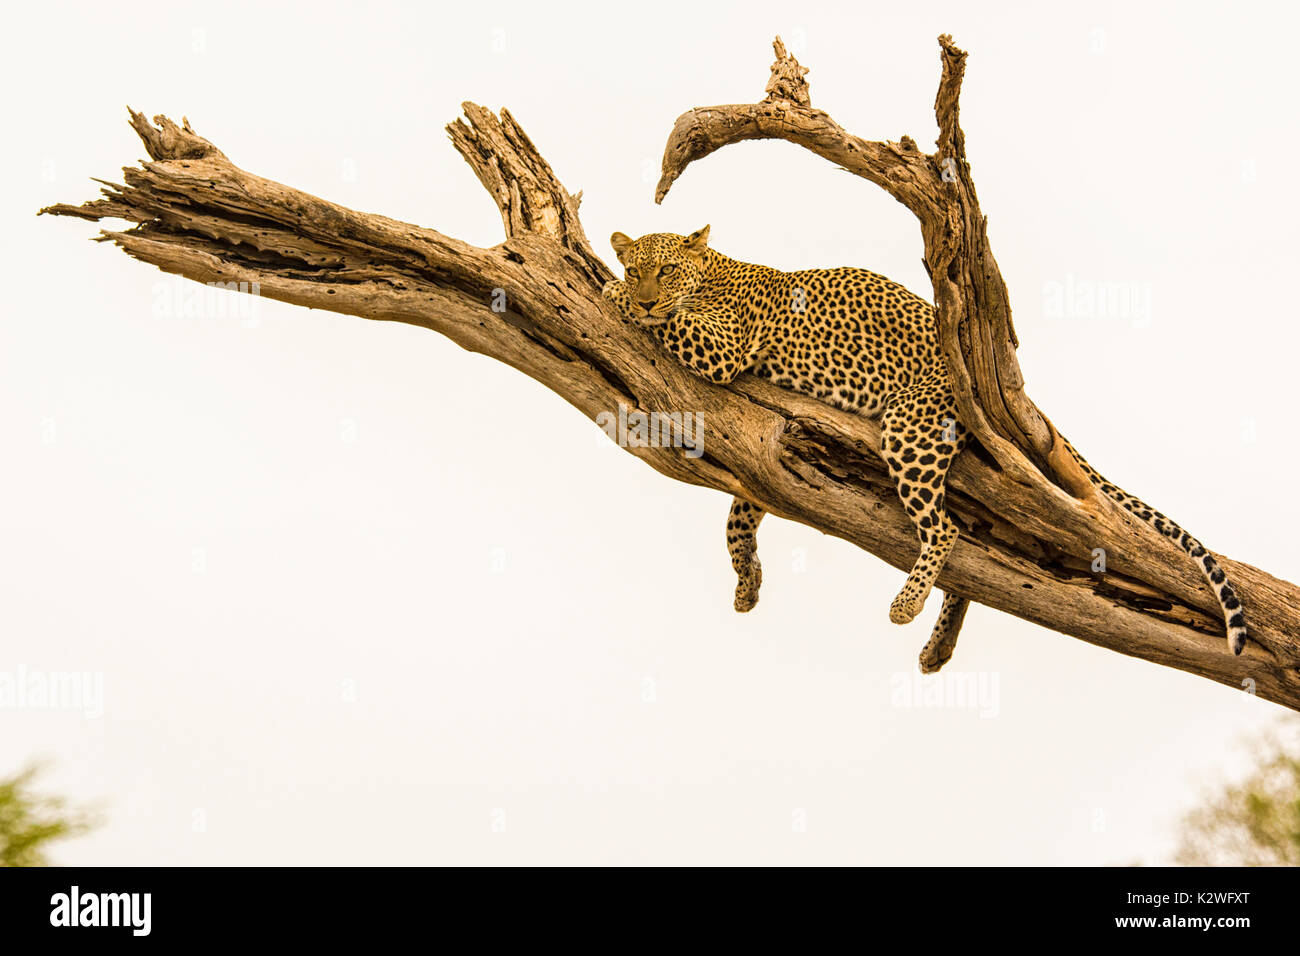 Solitary African Leopard, Panthera pardus, resting on a tree branch with legs dangling, in the Buffalo Springs National Stock Photo